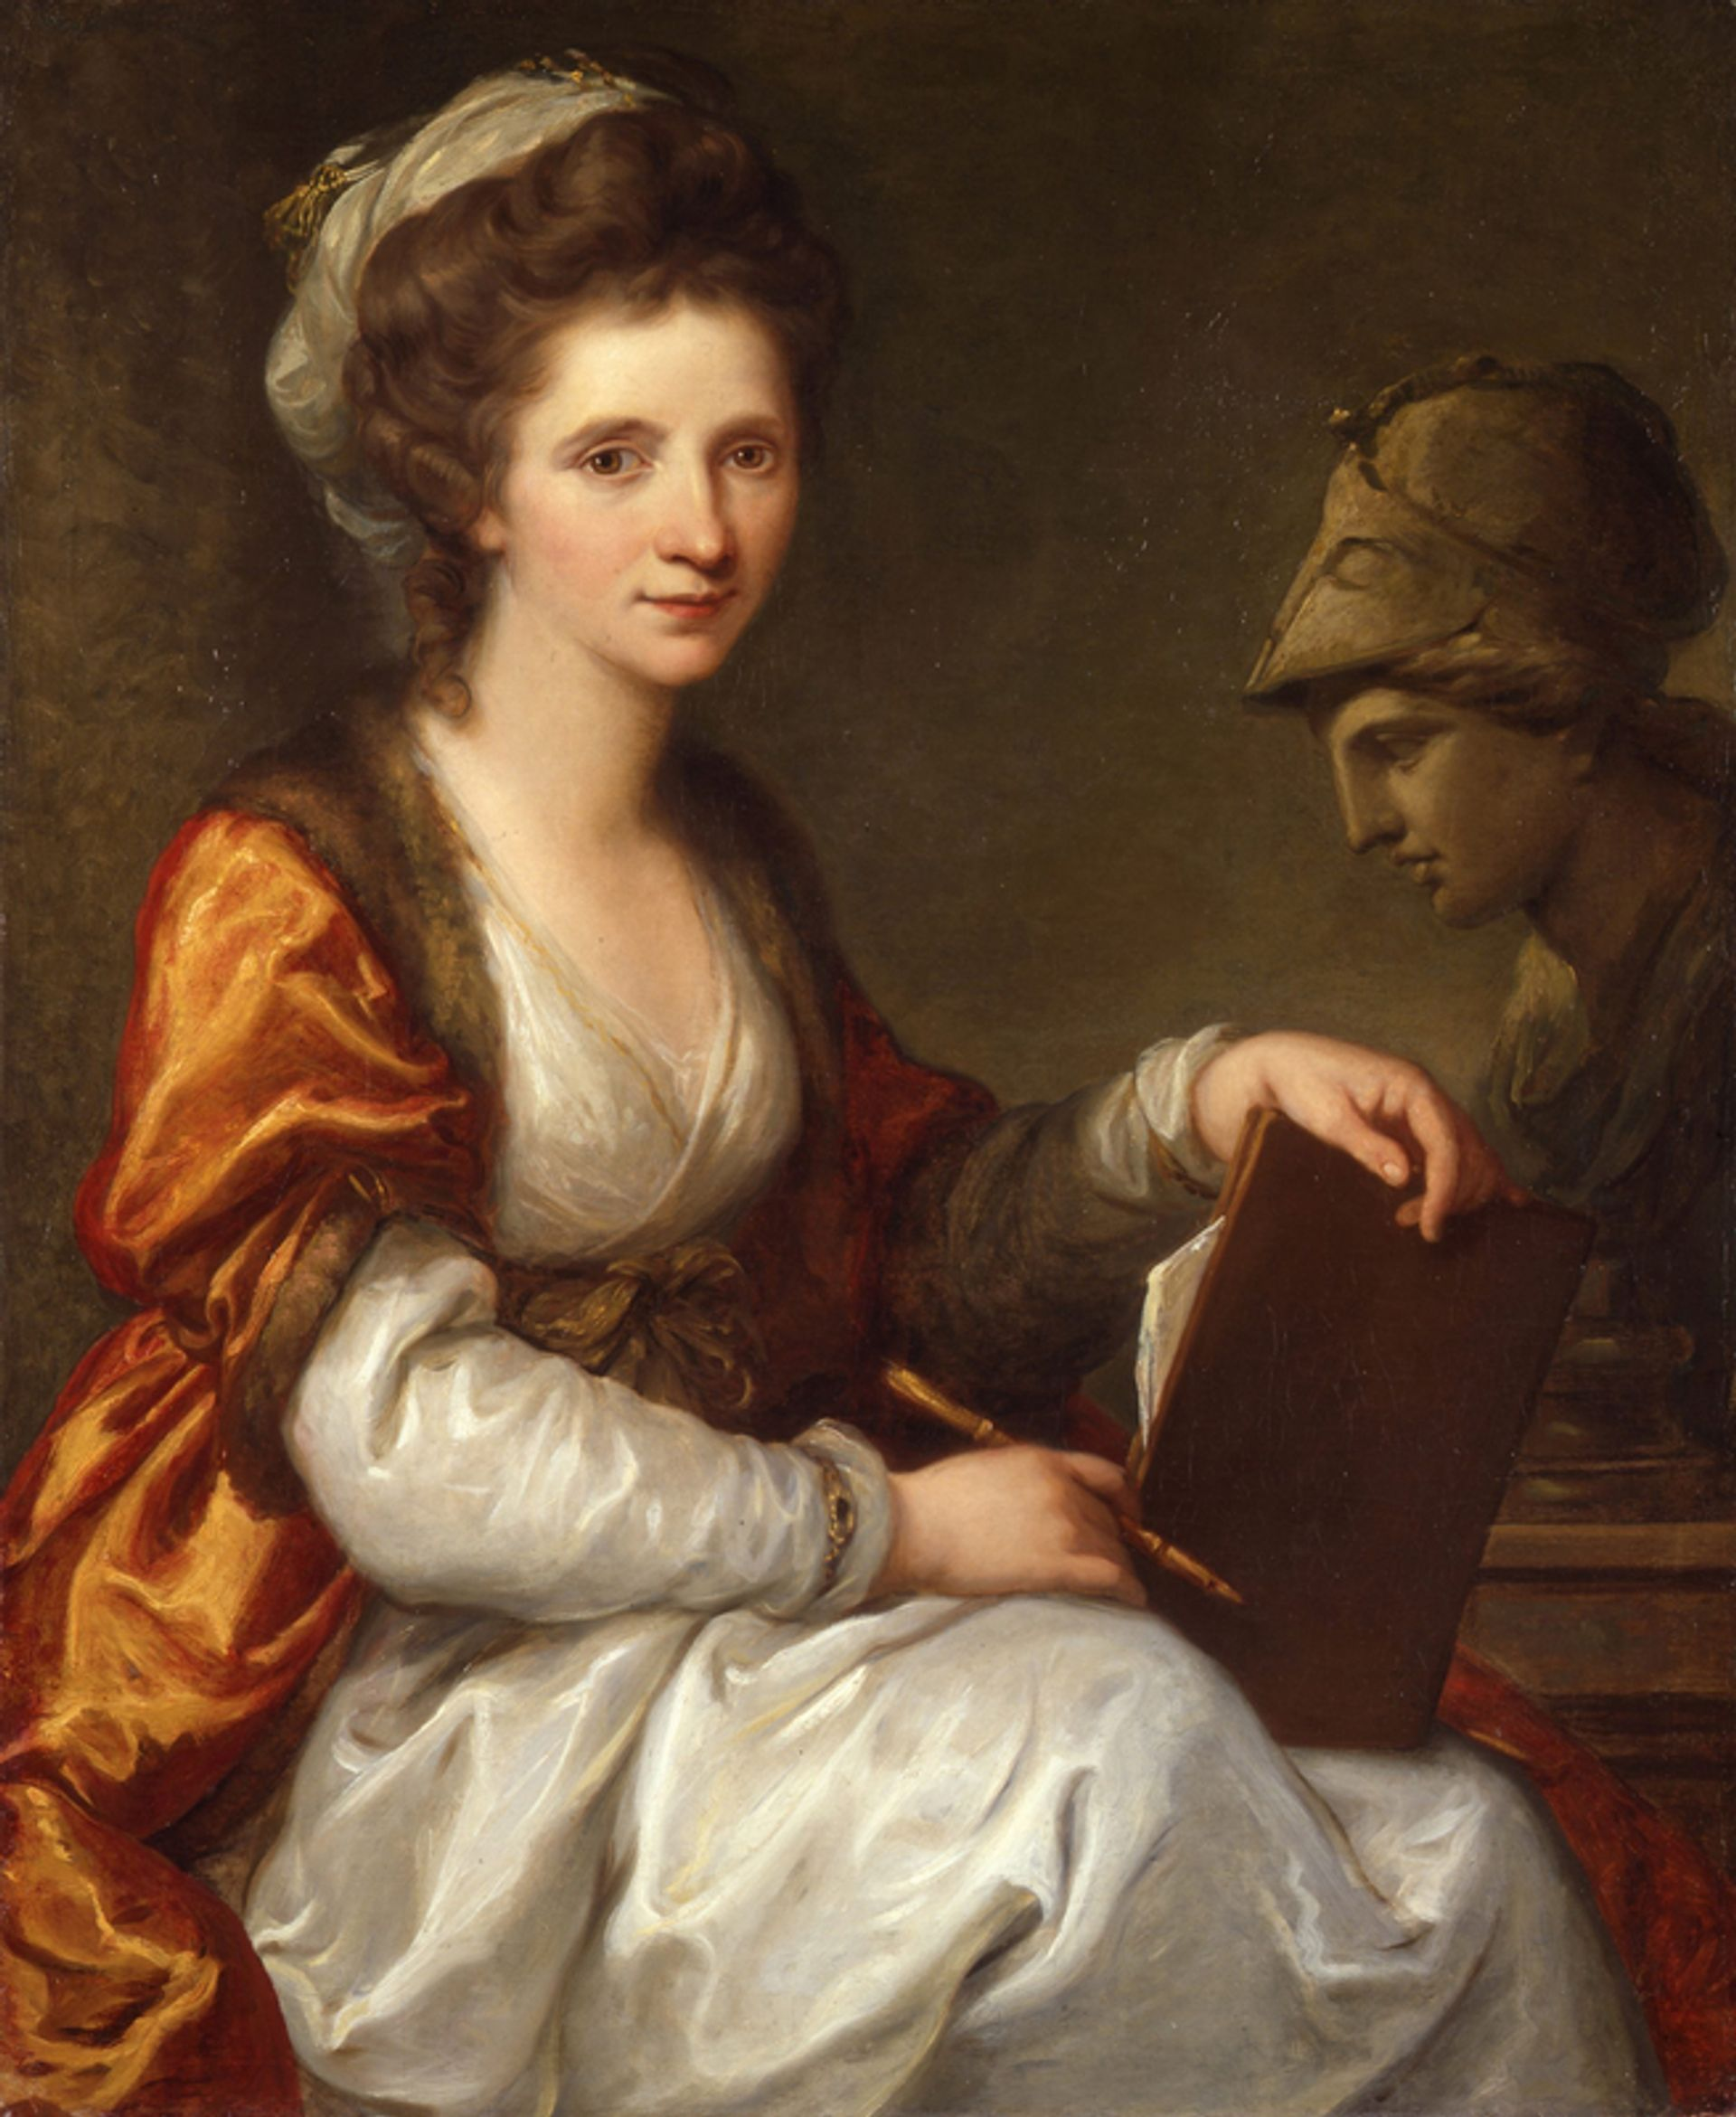 Angelica Kauffman, Self-portrait with the bust of Minerva (around 1784), was due to go on show at the Royal Academy of Arts © Photo: Bündner Kunstmuseum, Chur